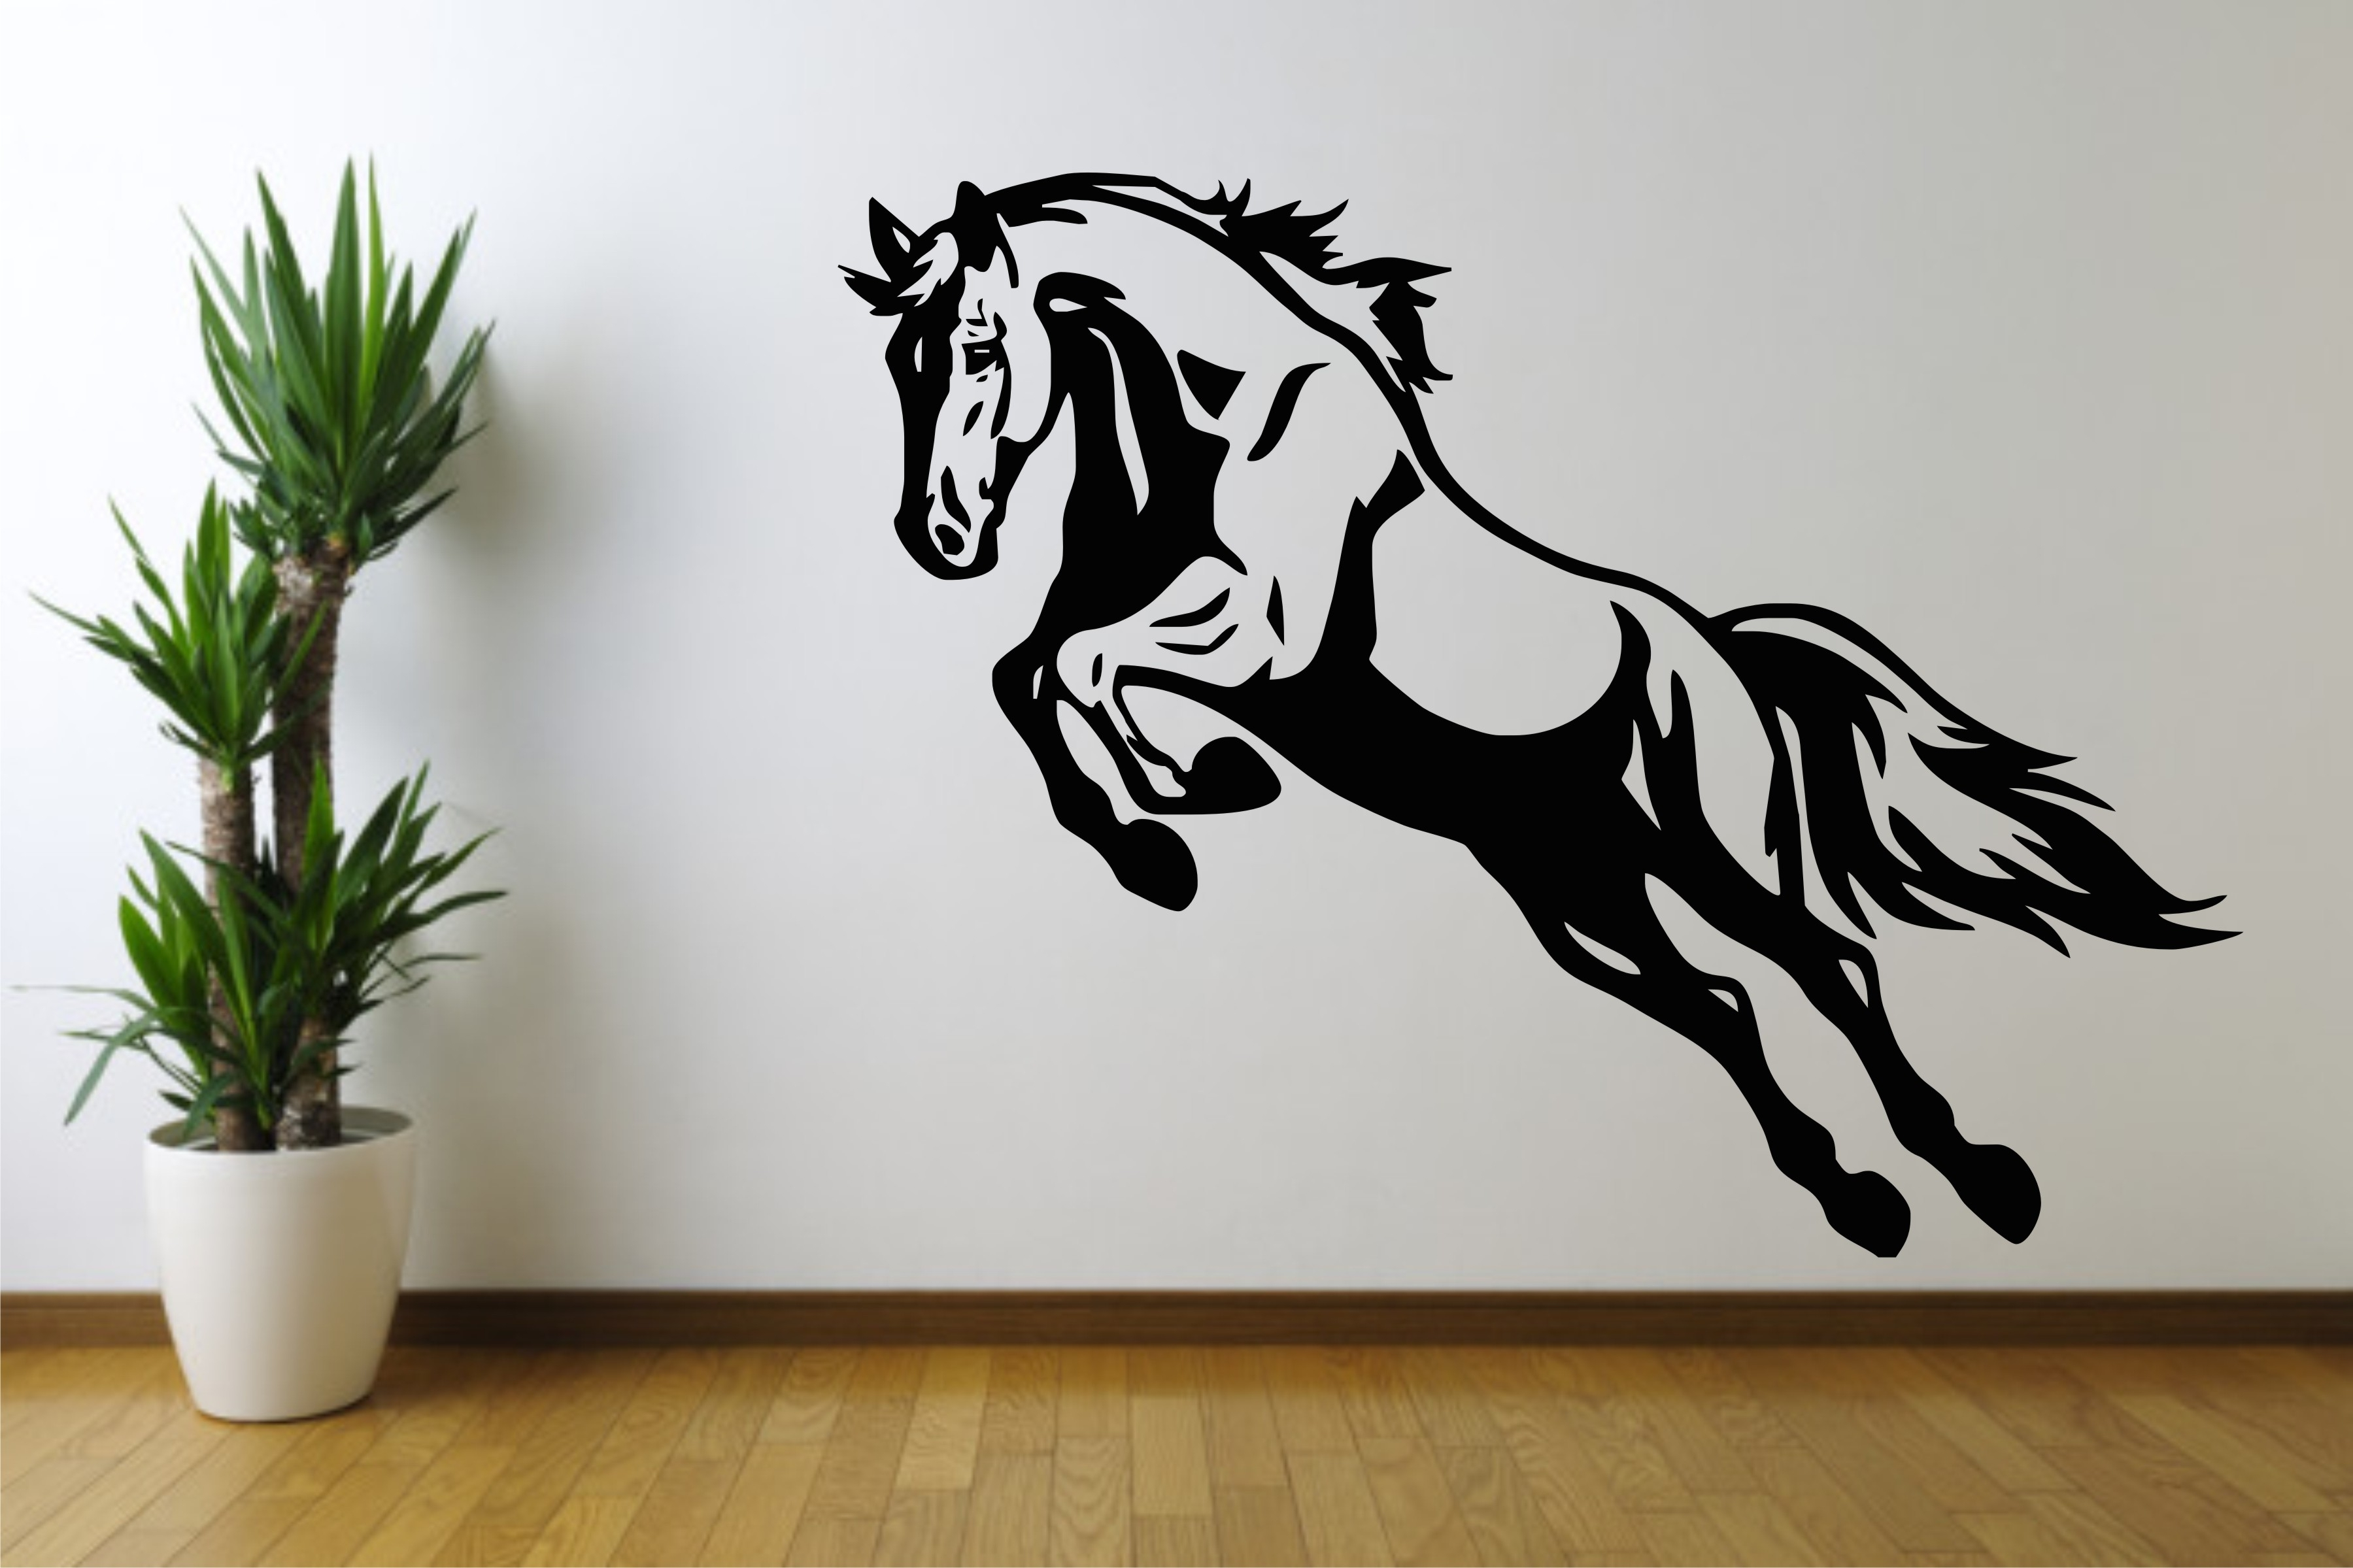 Affeda Good Horse Popular Horse Wall Decor – Wall Decoration And In Most Recently Released Horse Wall Art (View 12 of 15)